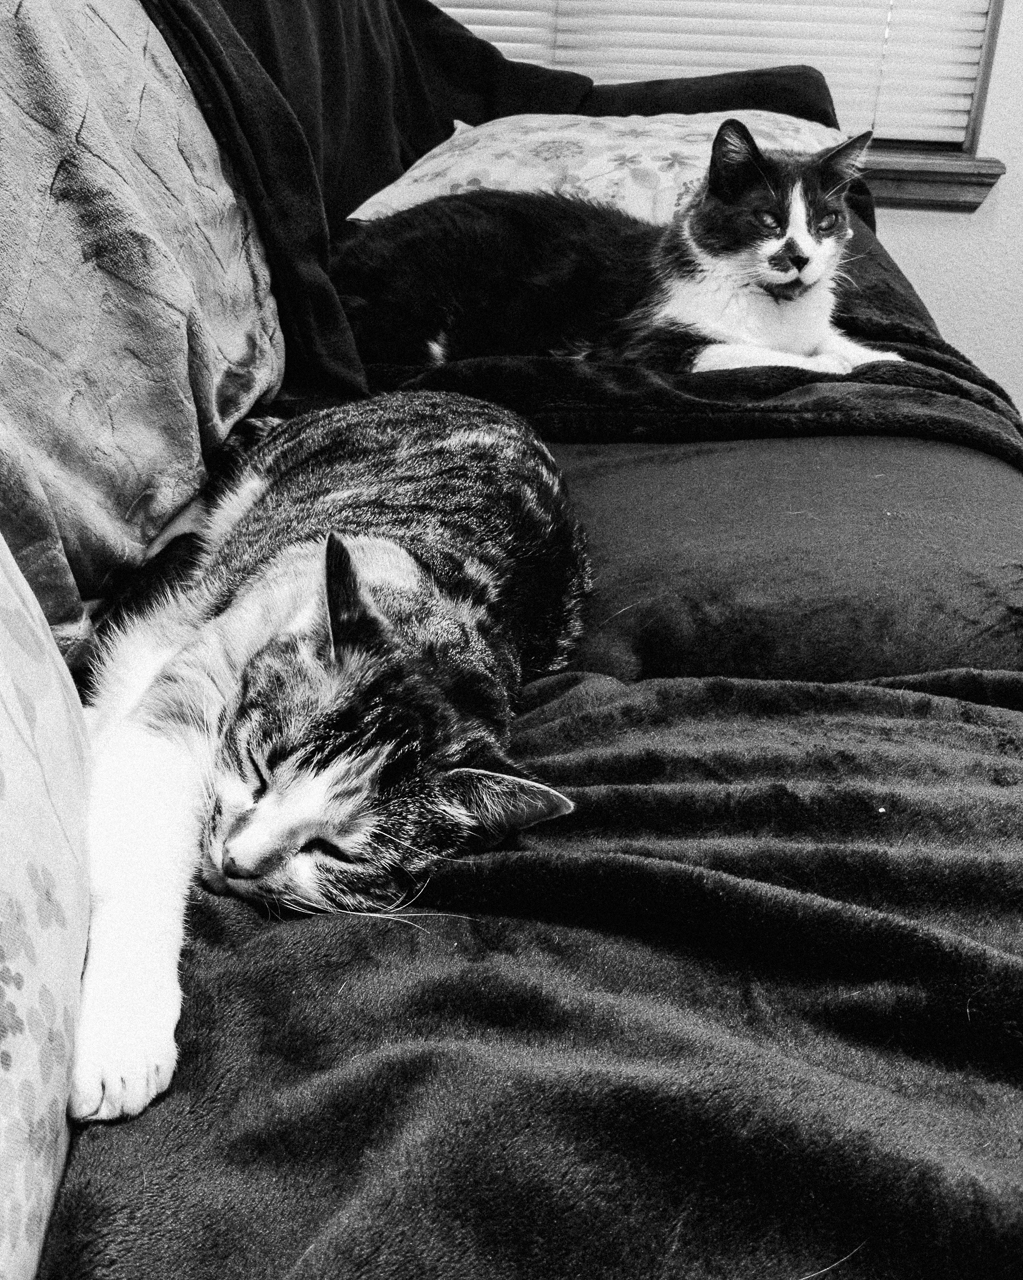 Day 201 - 365 Day B&W Photo Challenge - Cats have taken over the couch. - Google Pixel 3, Snapseed, VSCO Fujifilm Neopan 400 Film Simulation